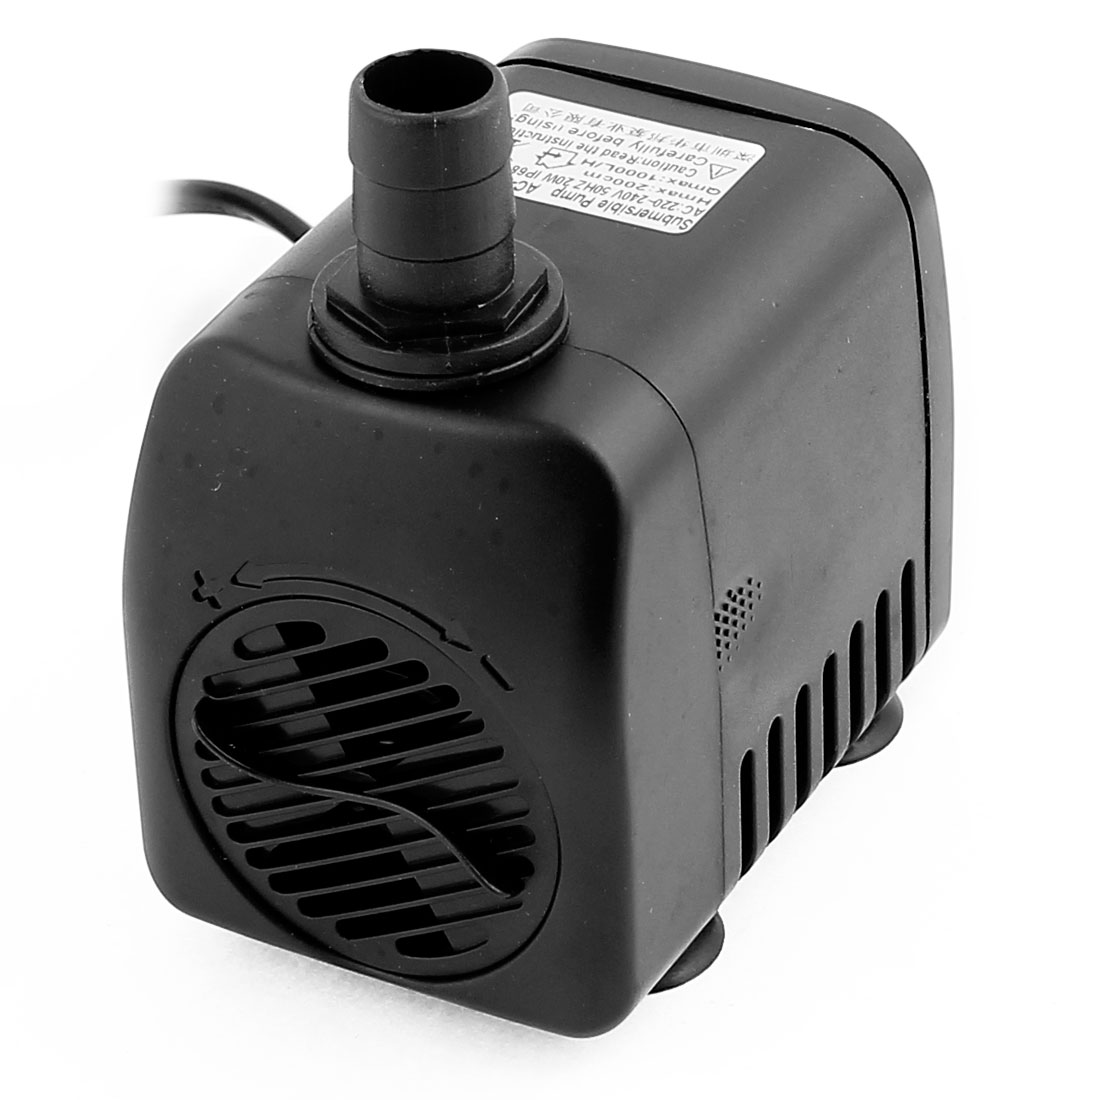 AC 220V-240V AU Plug 20W Electric Submersible Water Pump for Aquarium Fish Tank Fountain Pond